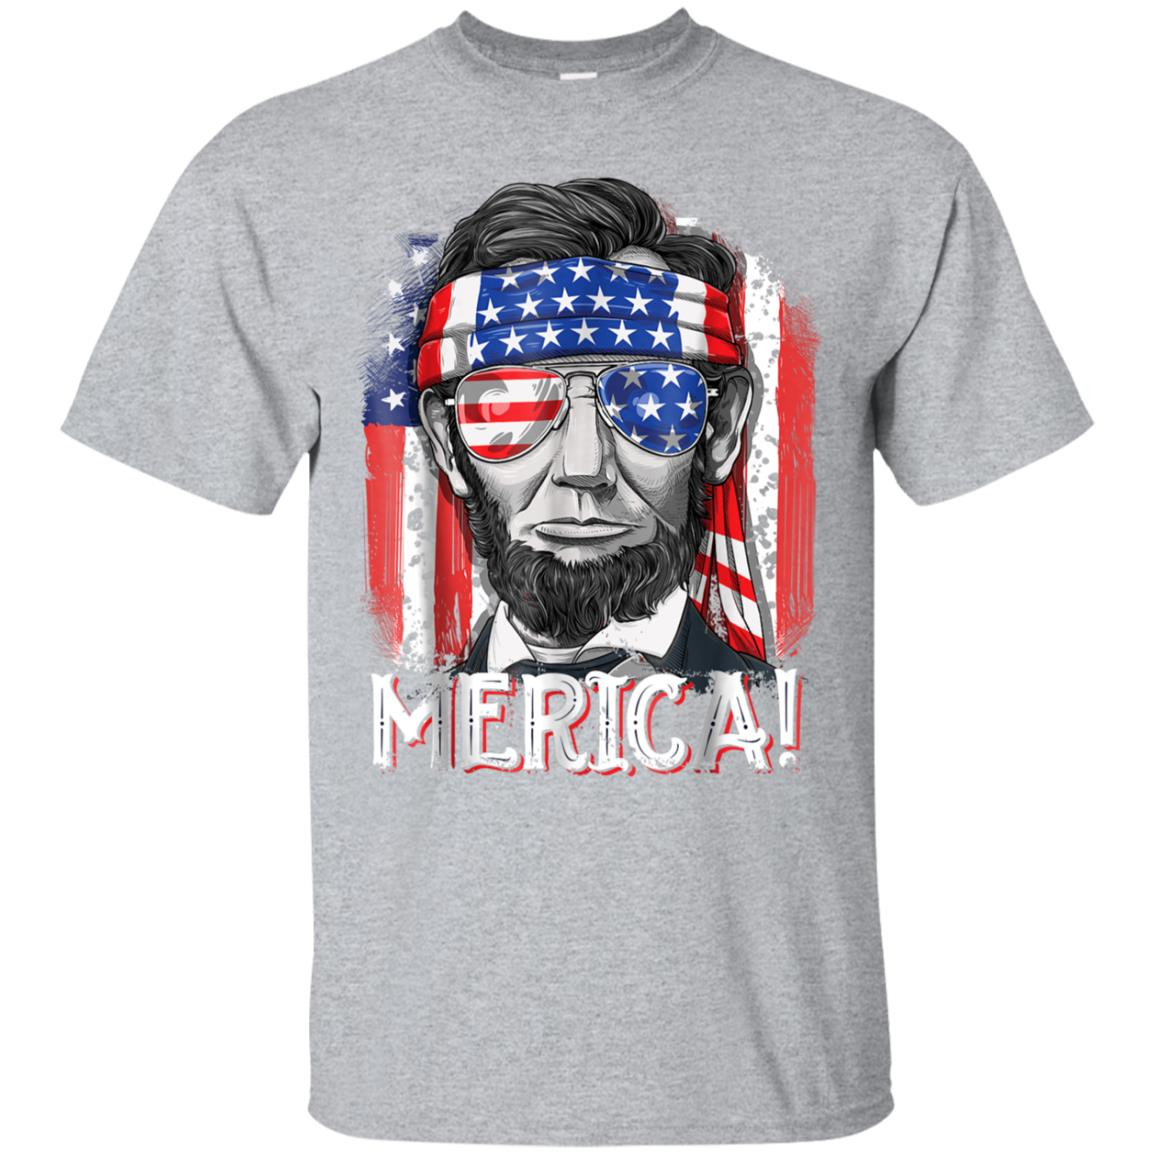 4th of July Shirts for Men Merica Abe Lincoln Boys Kids Gift 99promocode